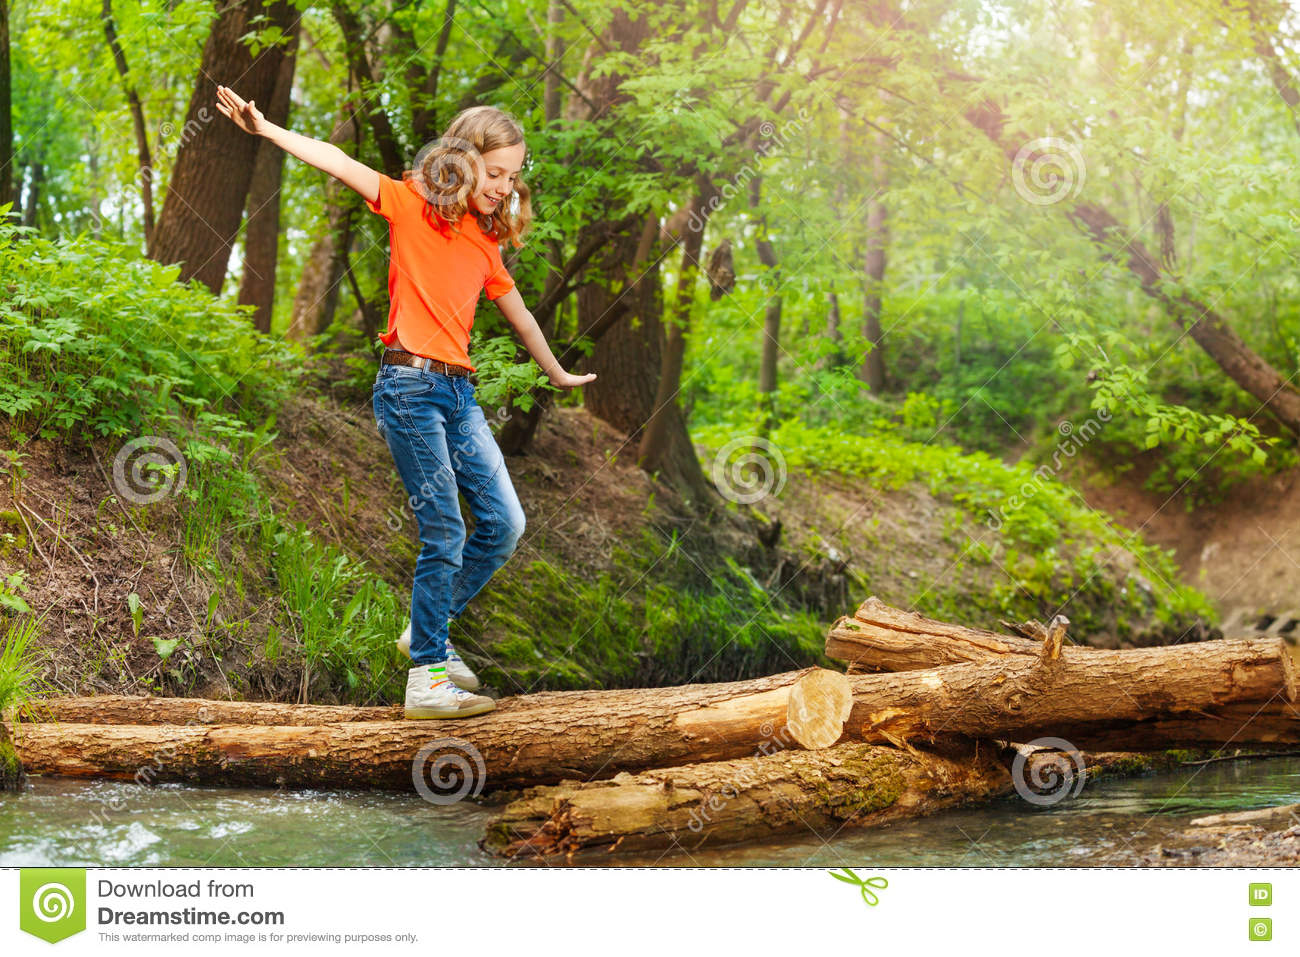 Cute girl balancing while crossing a log bridge